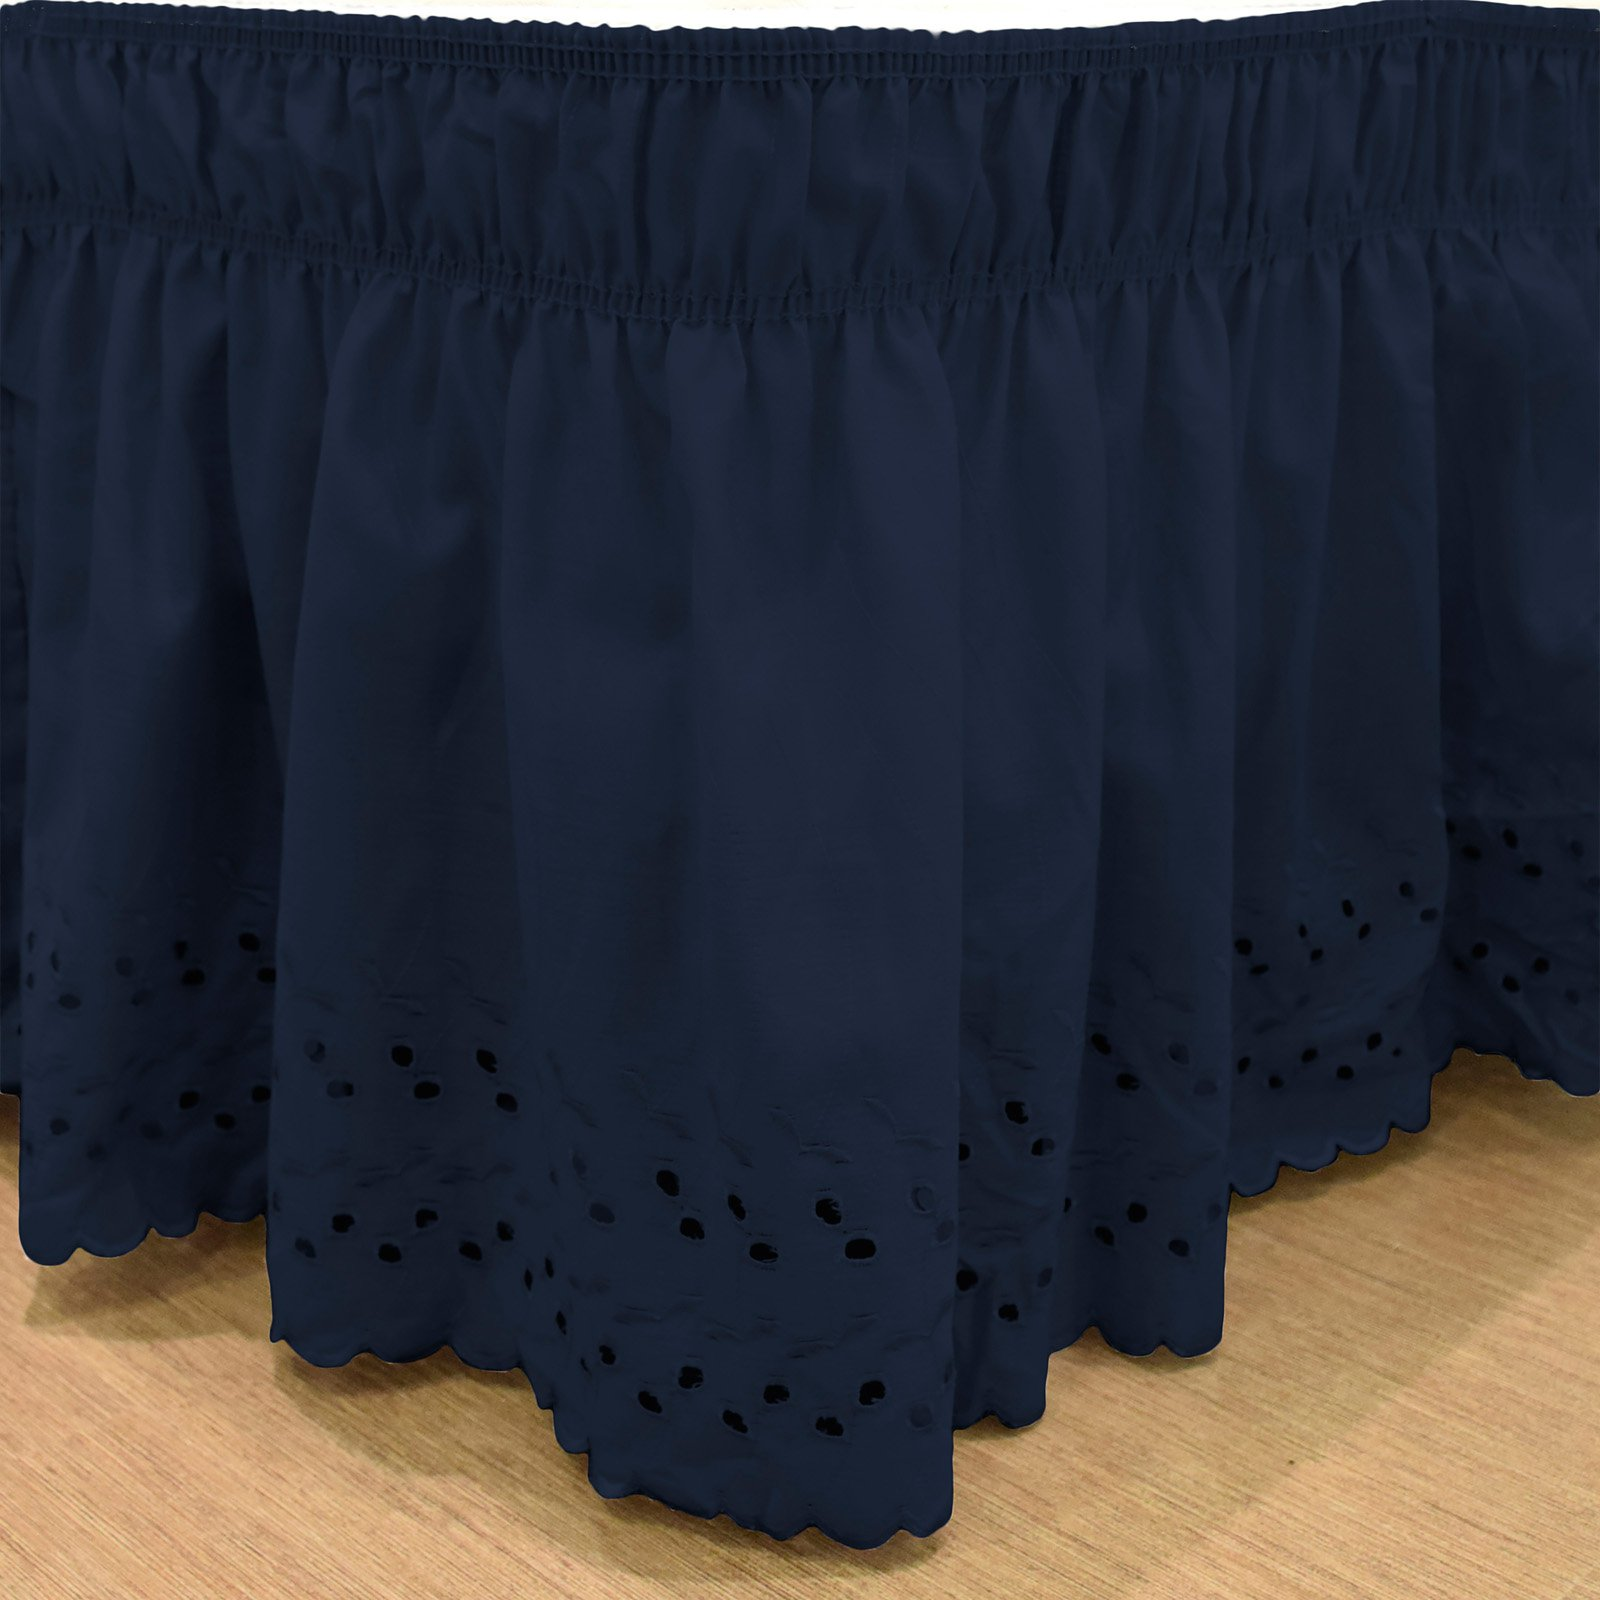 Wrap Around Eyelet Bed Skirt By Easyfit Navy Ruffle Bedding Bedskirt Ruffle Bed Skirts